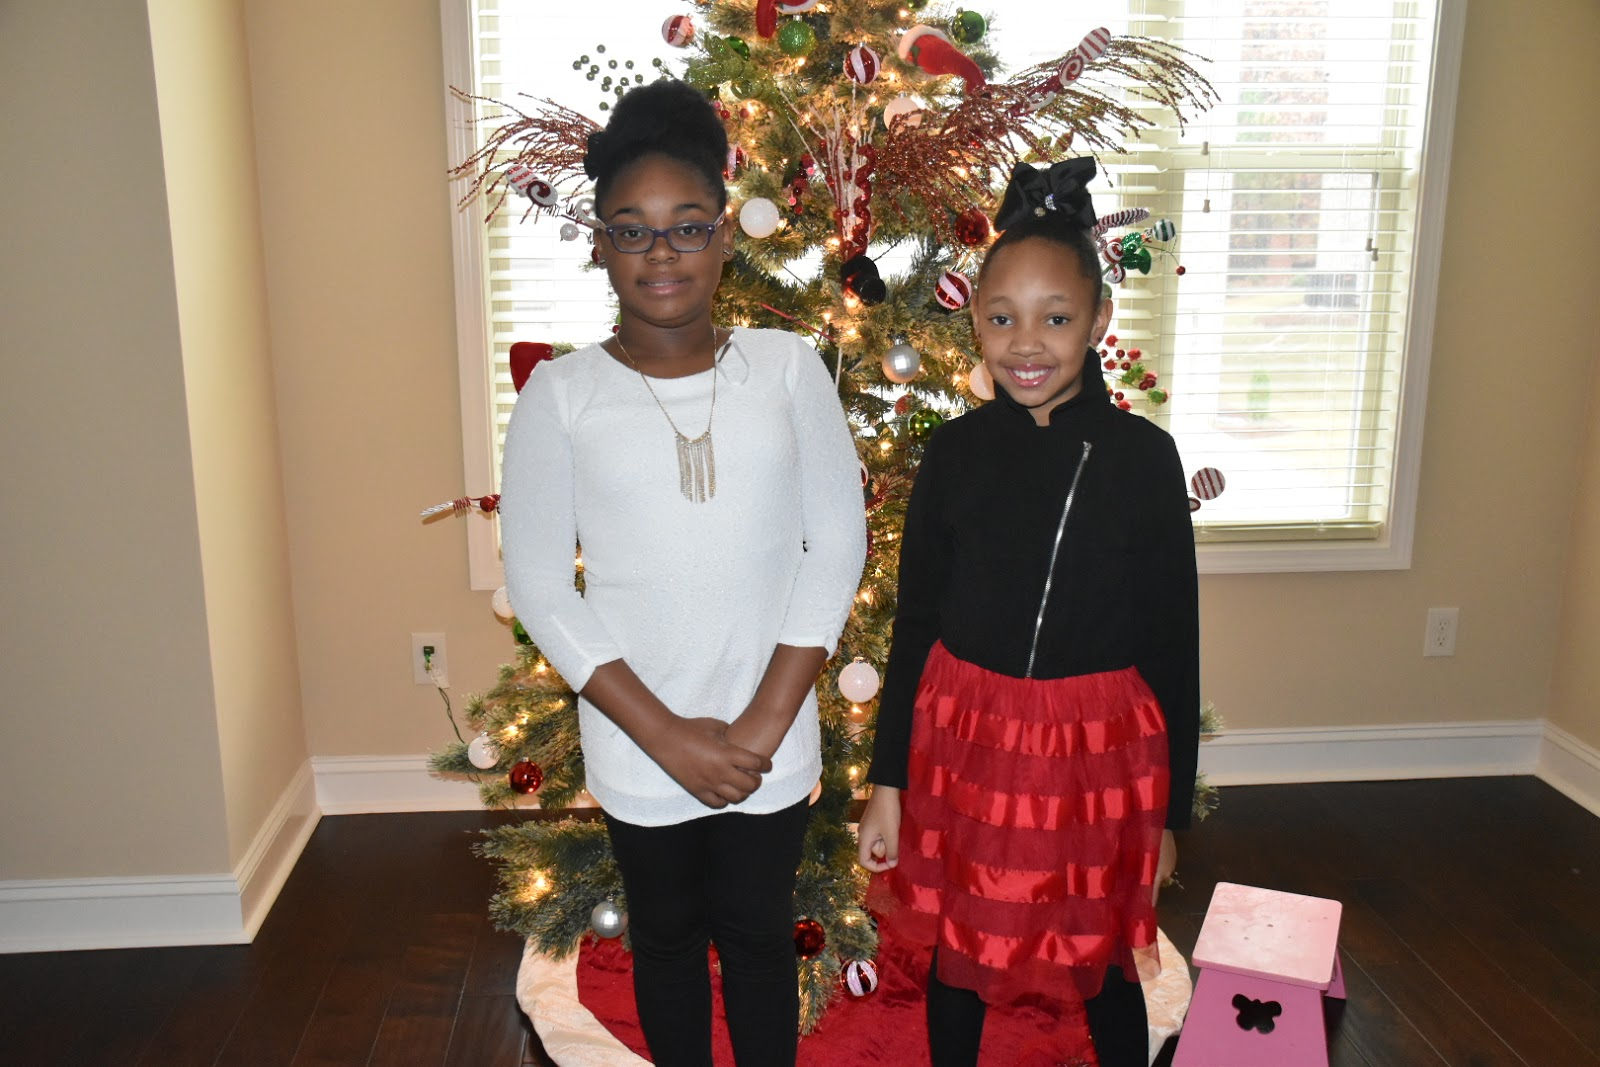 The Girls' Christmas Wish List  via  www.productreviewmom.com